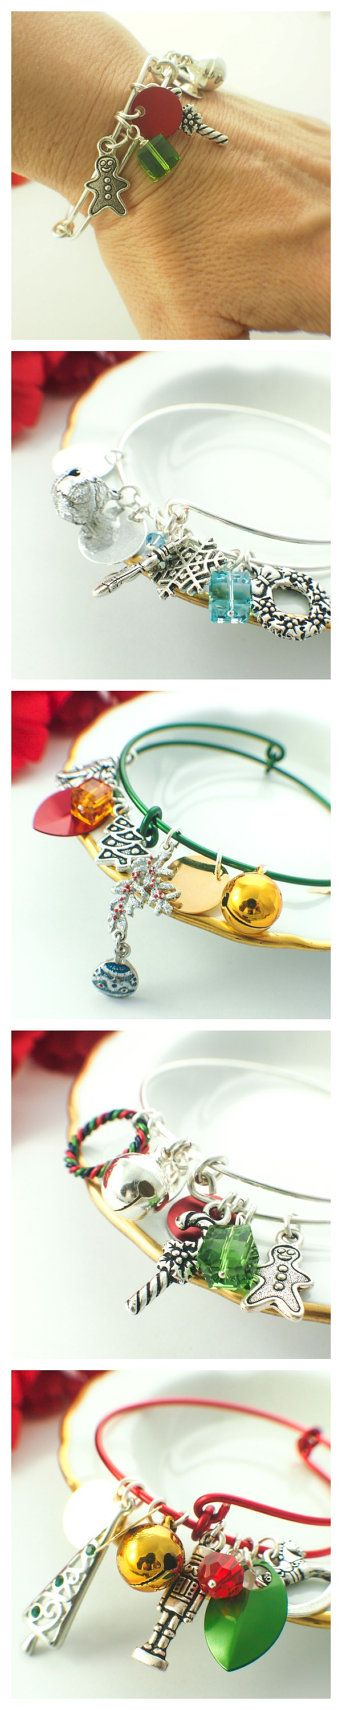 SnagLess Christmas Charmed Bangle Kit by UnkamenSupplies on Etsy